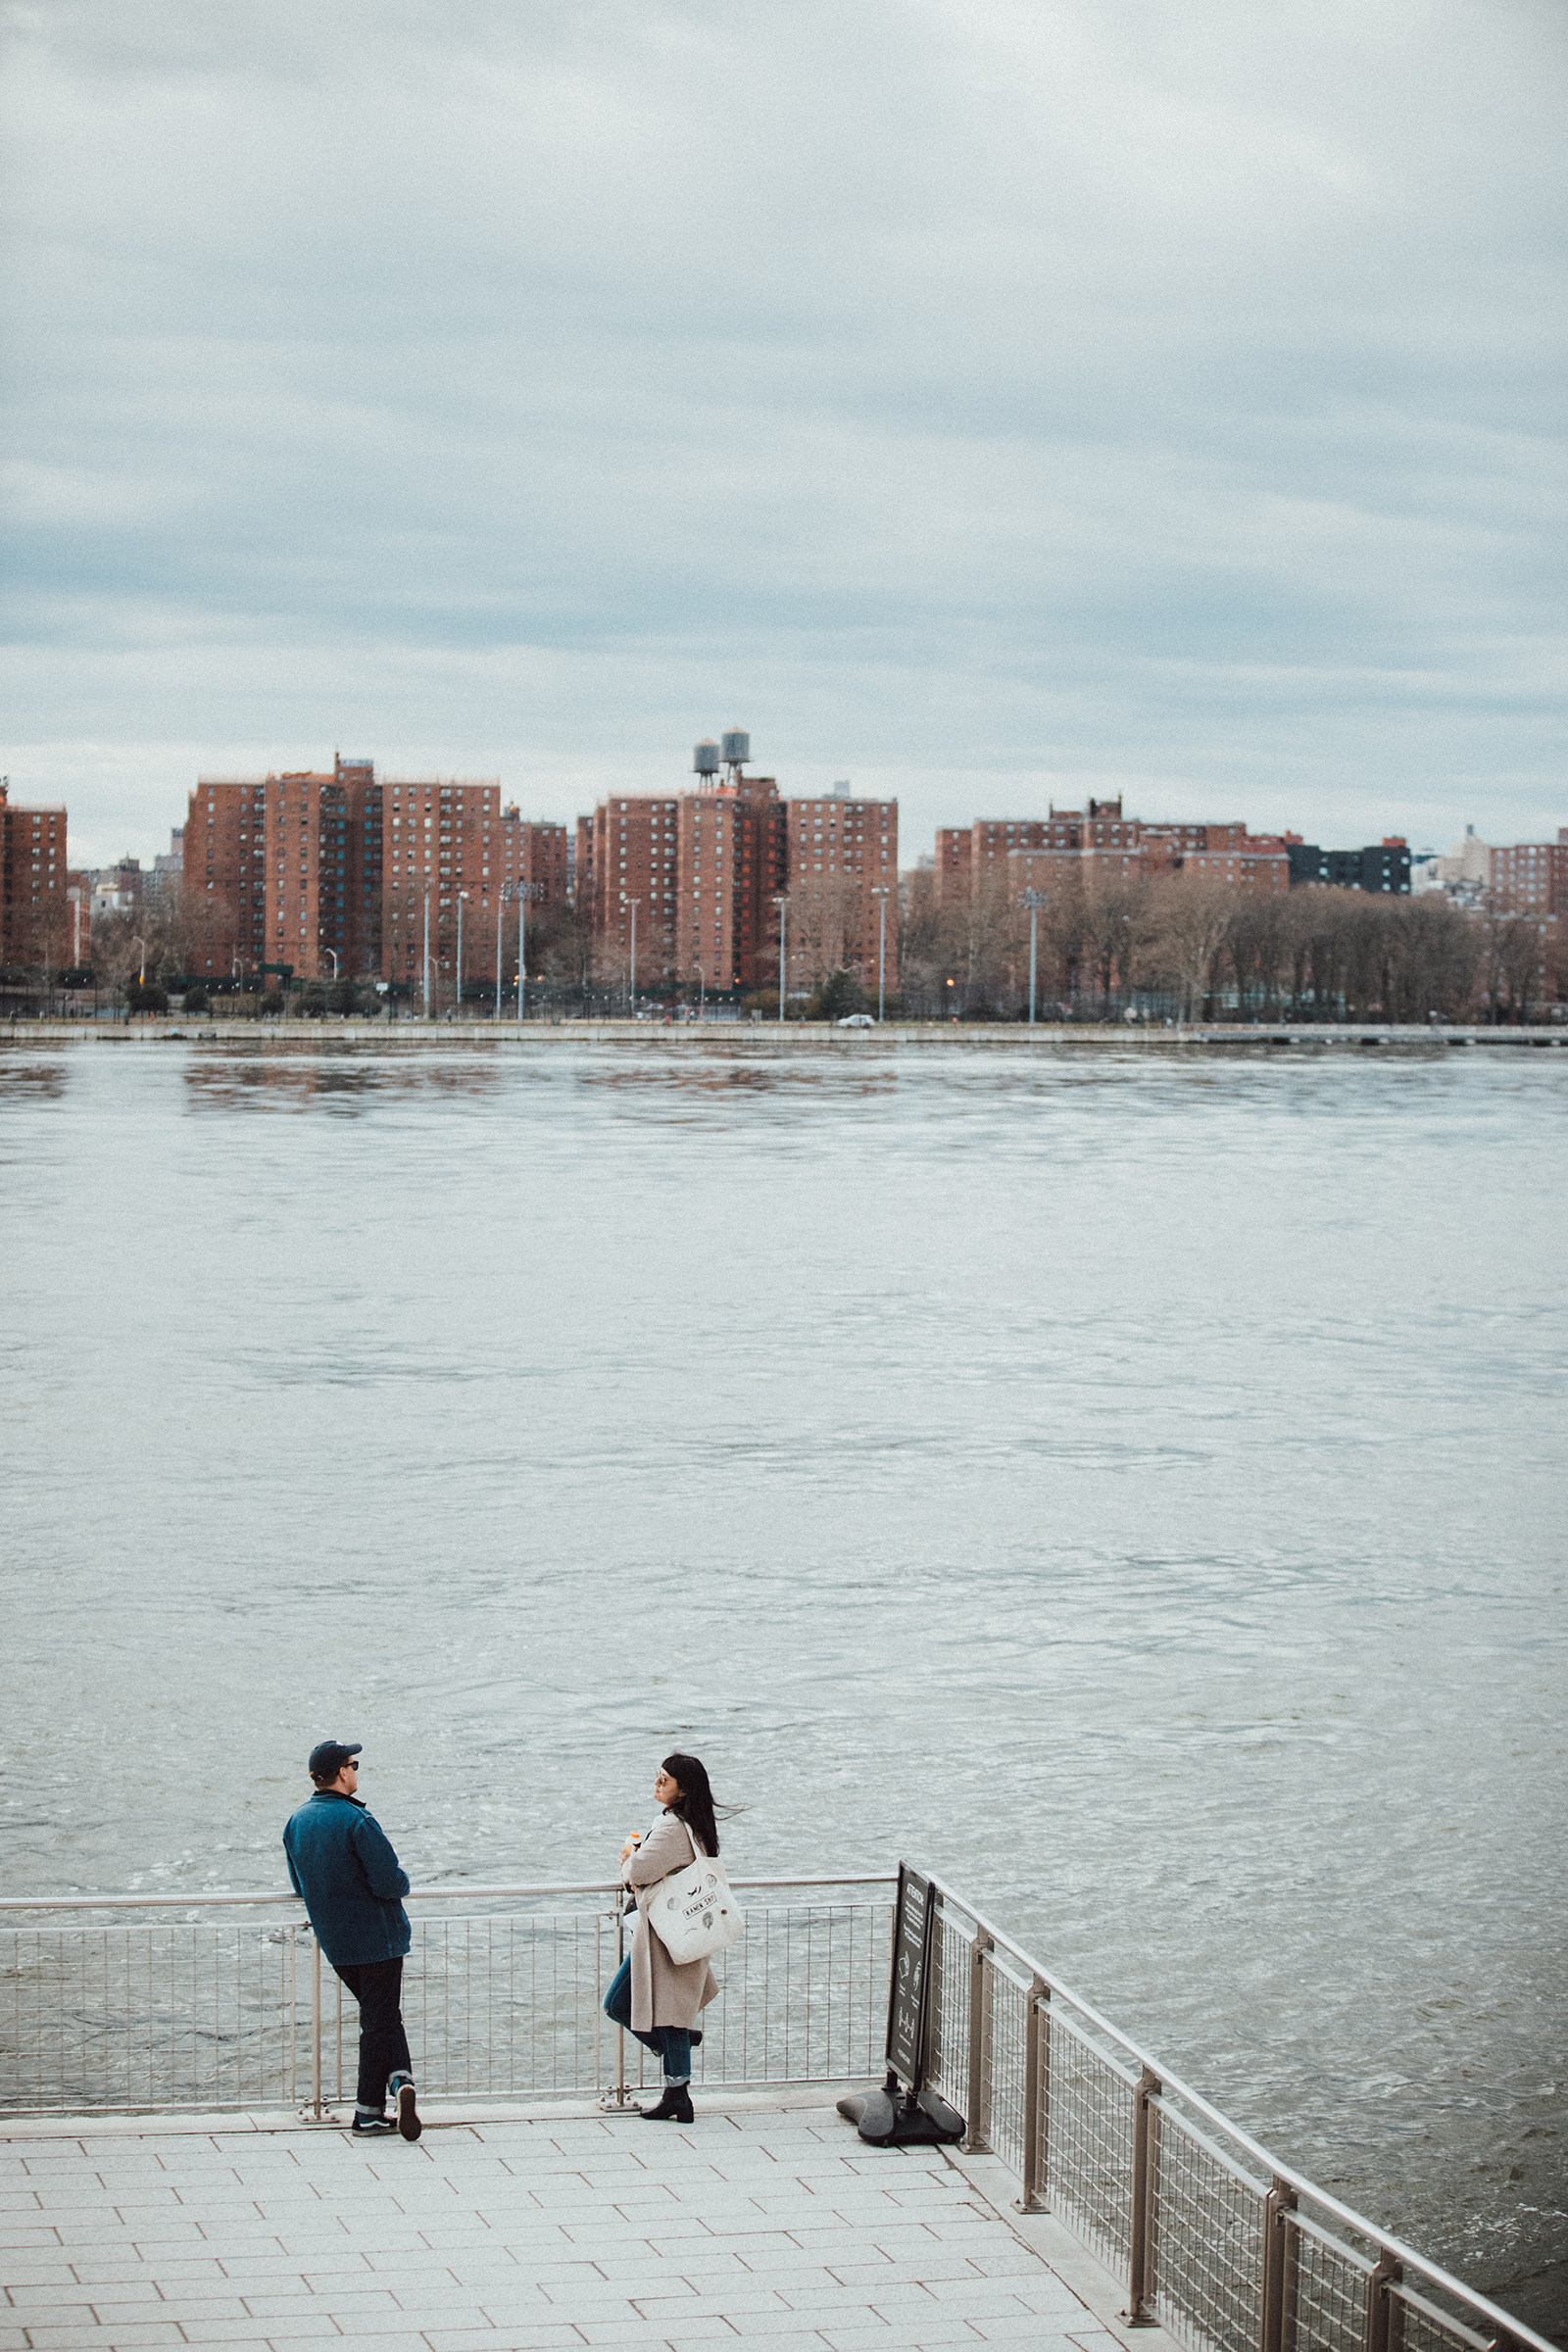 A couple in Domino Park in Williamsburg, Brooklyn on April 4th, 2020.